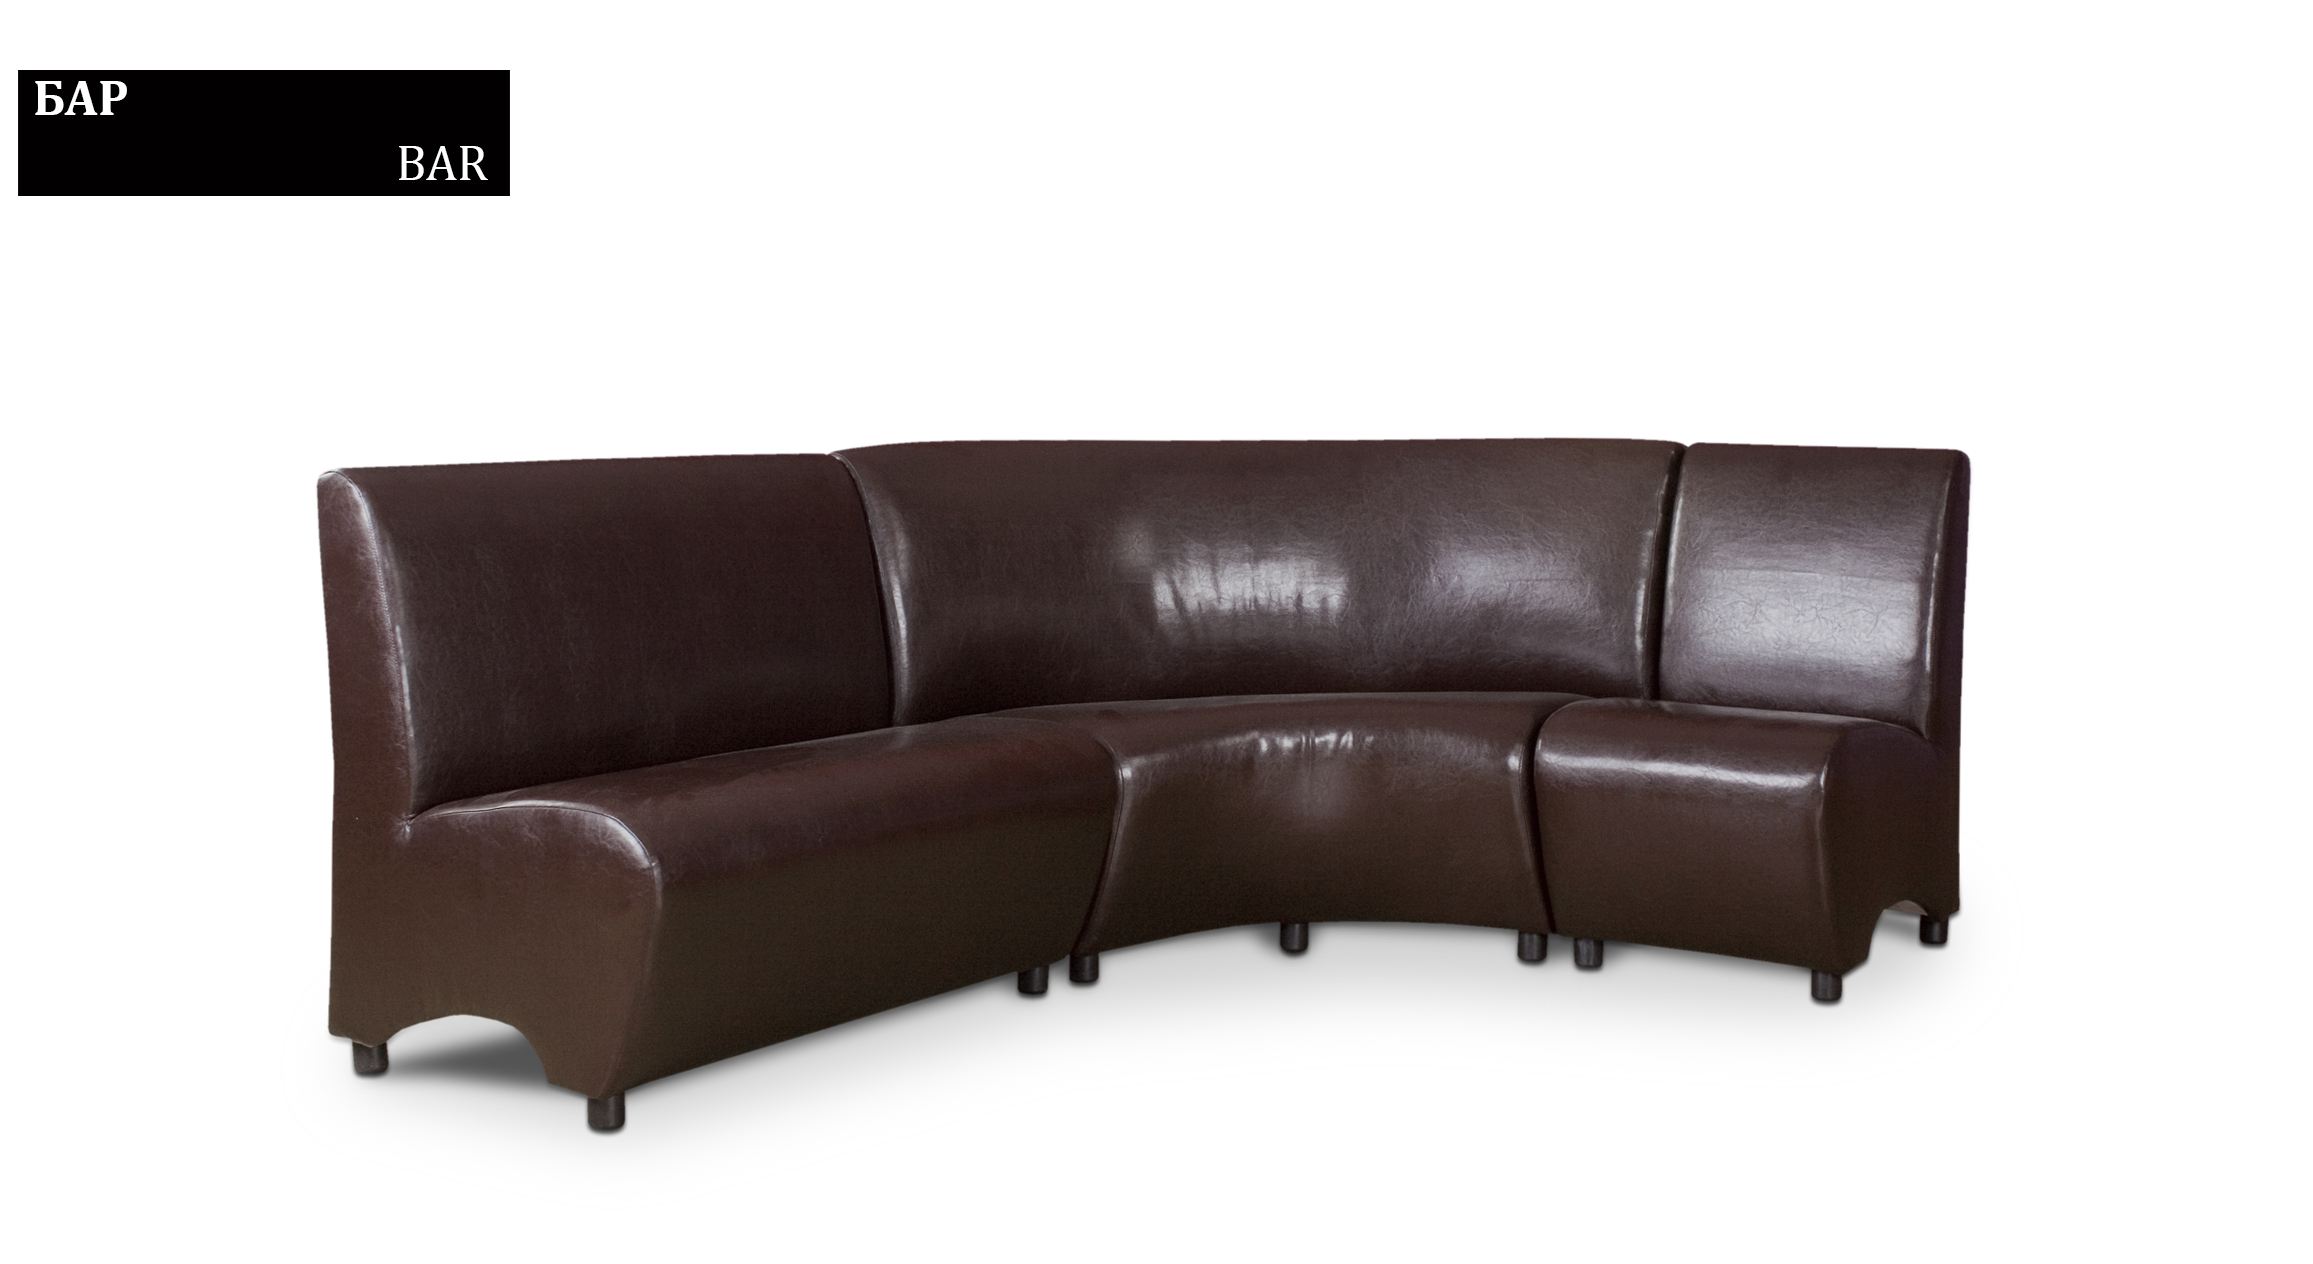 Sofa Quot Bar Quot Standard Sofas By Rudi An